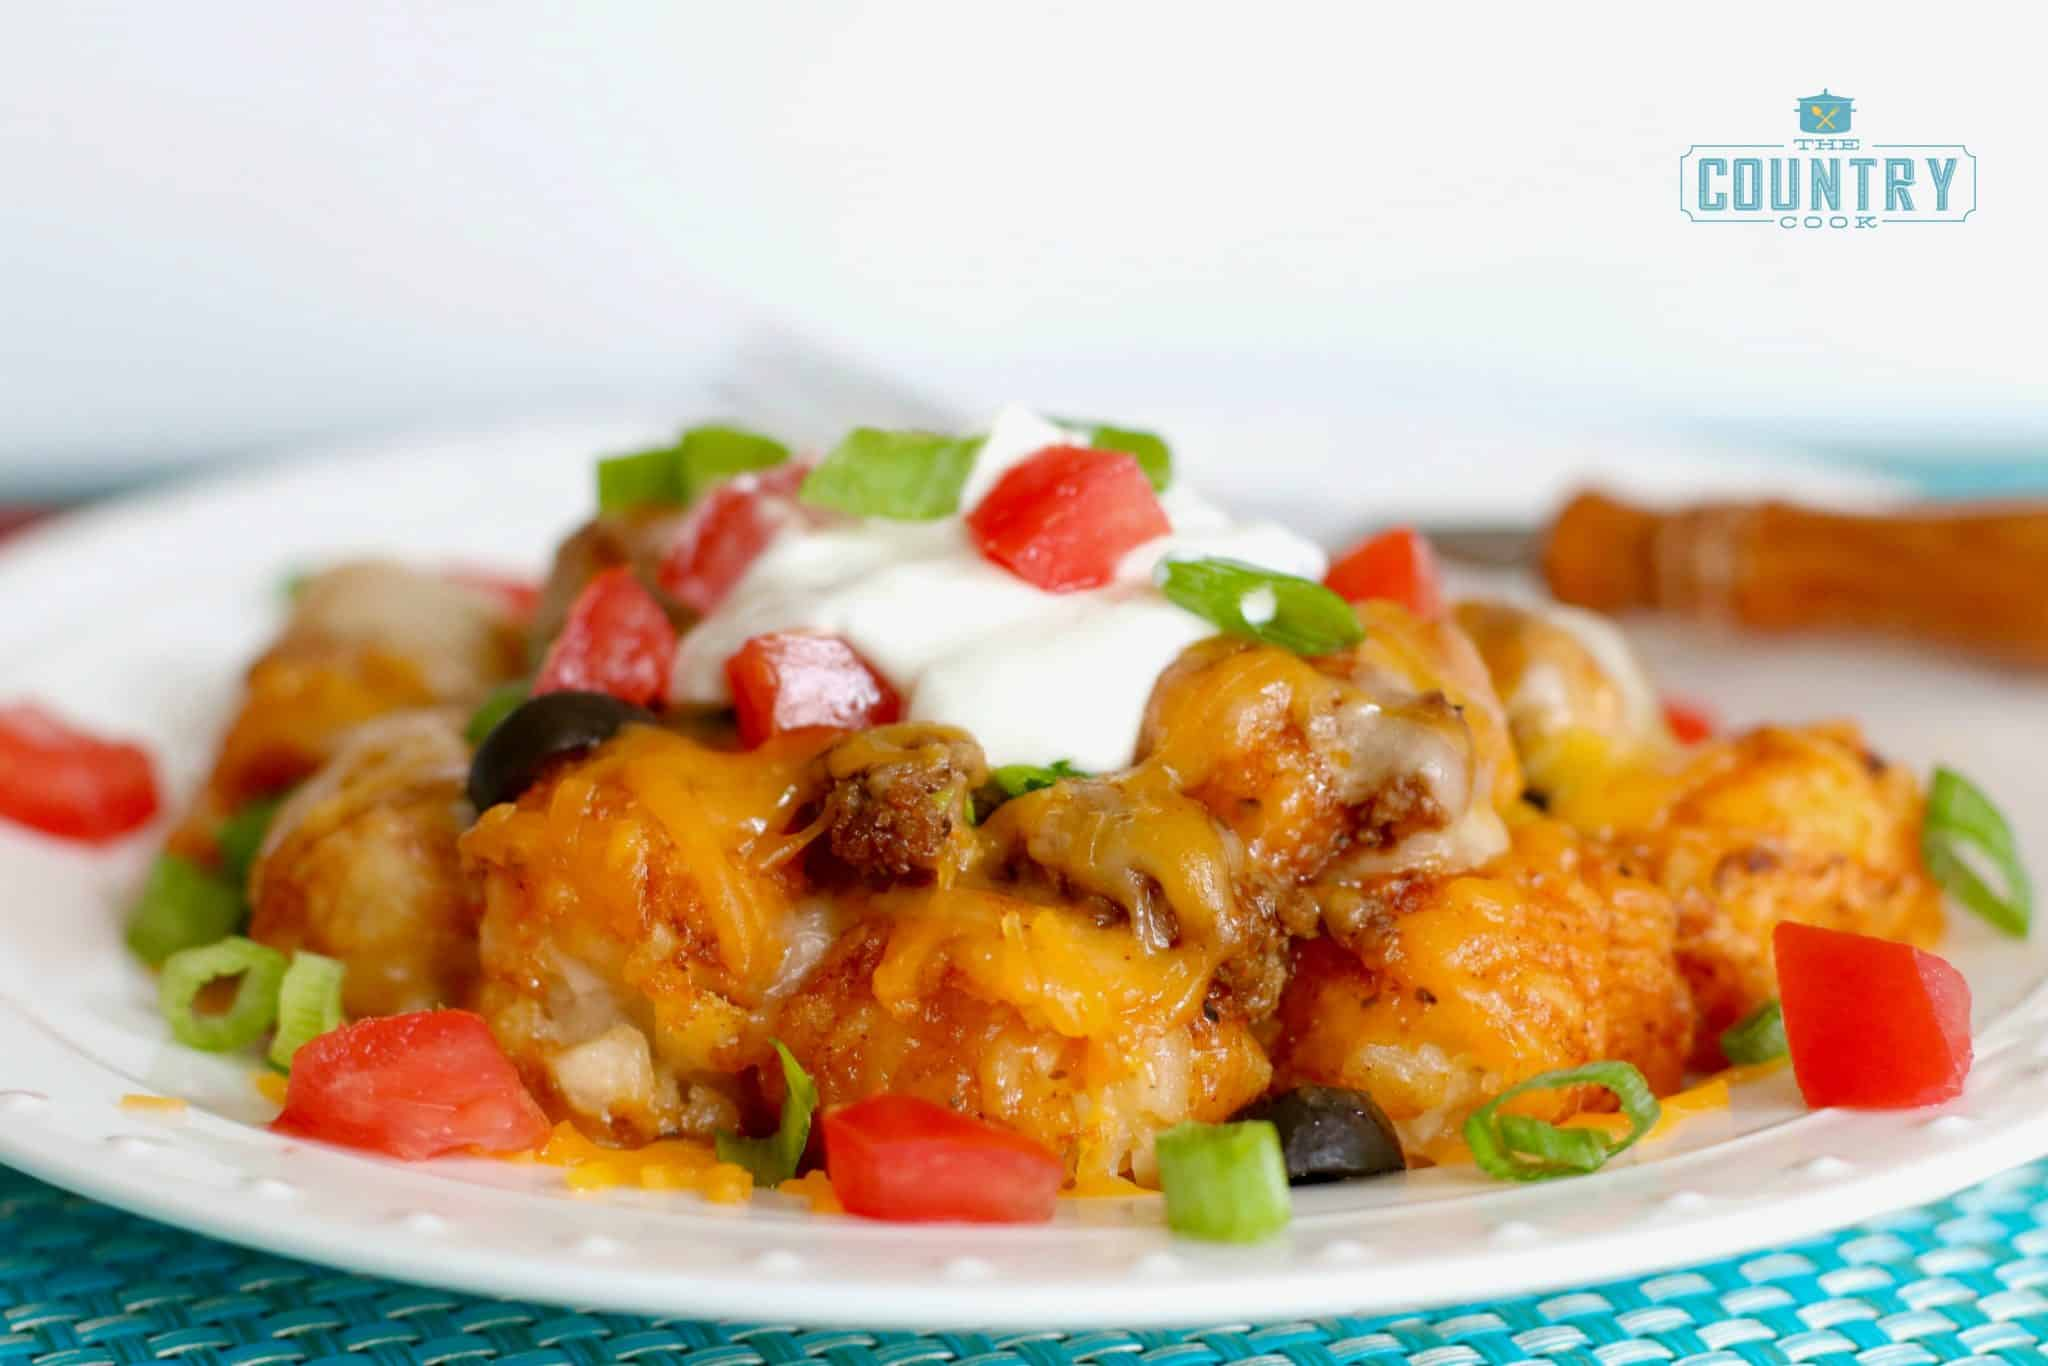 Tater Tot Enchilada Bake serving shown on a round white plate.